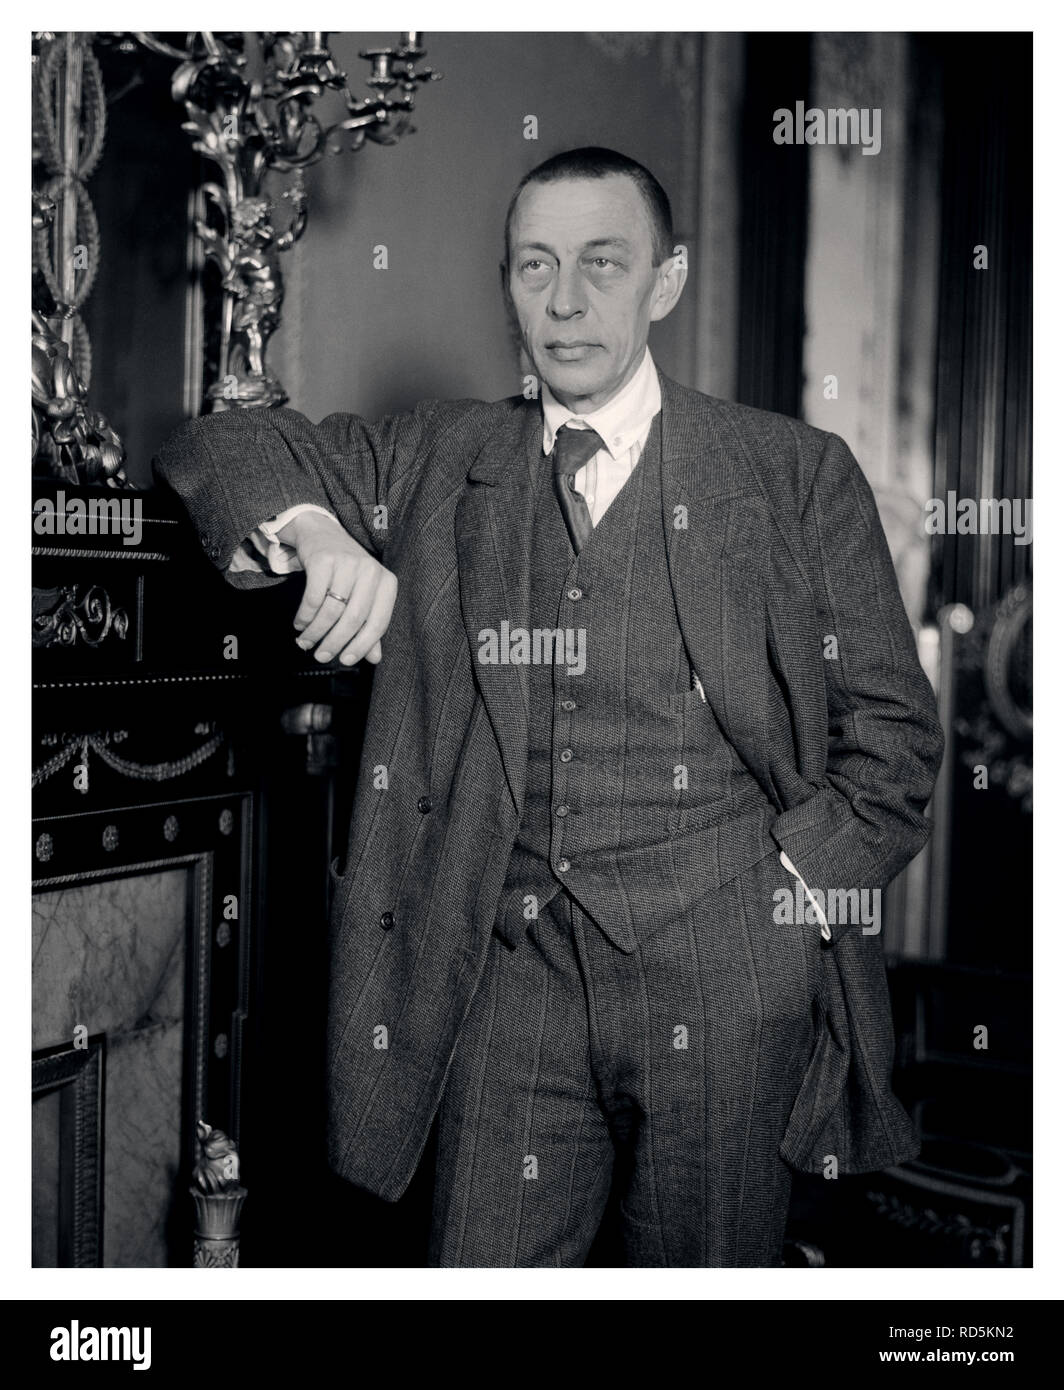 Rachmaninoff 1940 B&W portrait of the renowned Russian composer Sergei Rachmaninoff (1873-1943) Sergei Vasilyevich Rachmaninoff was a Russian composer, virtuoso pianist and conductor of the late Romantic period, some of whose works are among the most popular in the Romantic repertoire. Born into a musical family, Rachmaninoff a child prodigy took up the piano at age four. - Stock Image